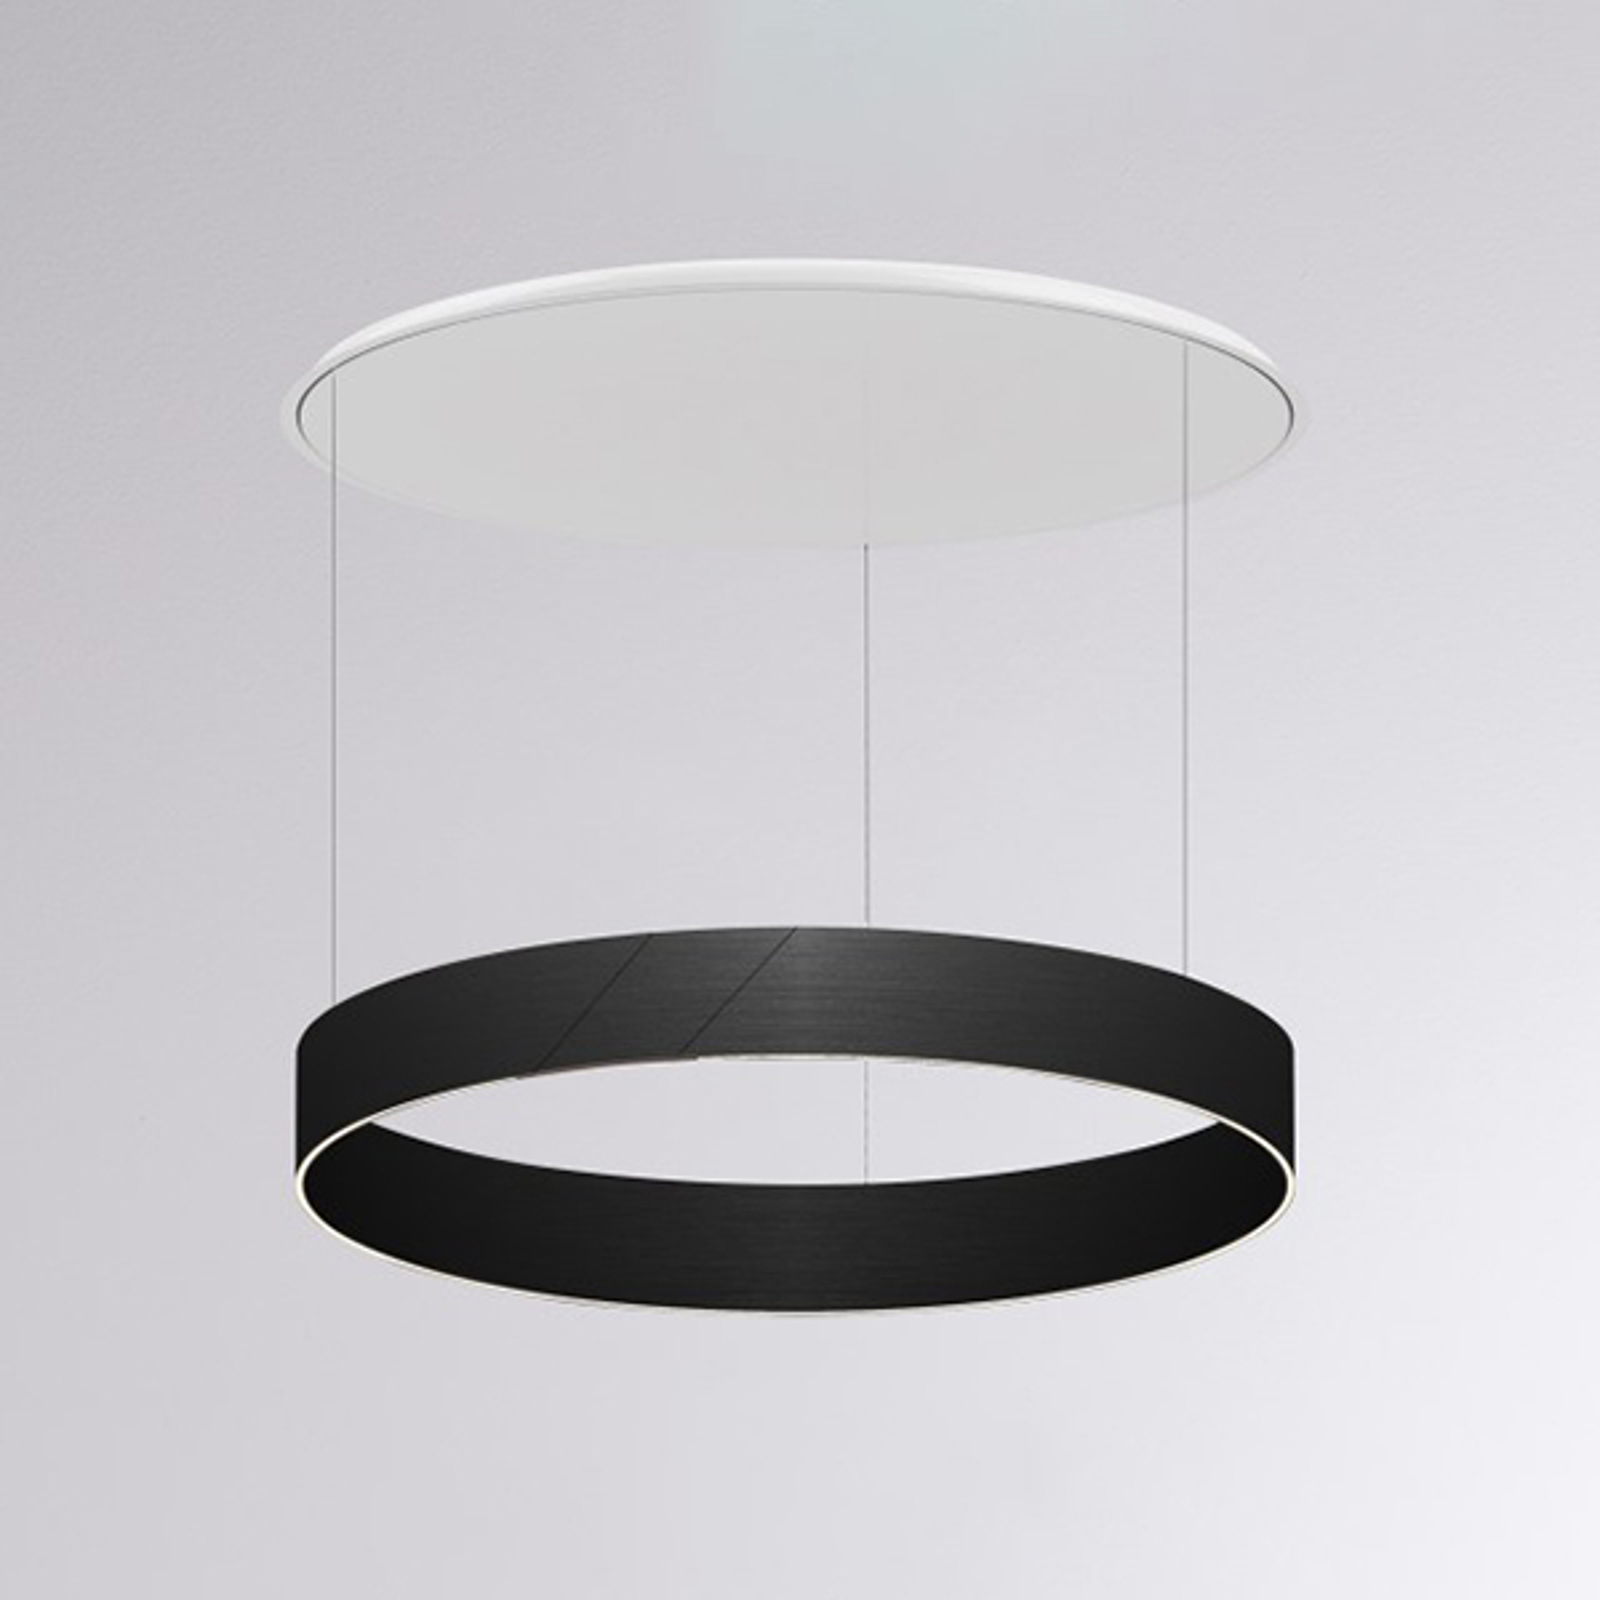 LED hanglamp After 8 Round DALI 2.700K zwart